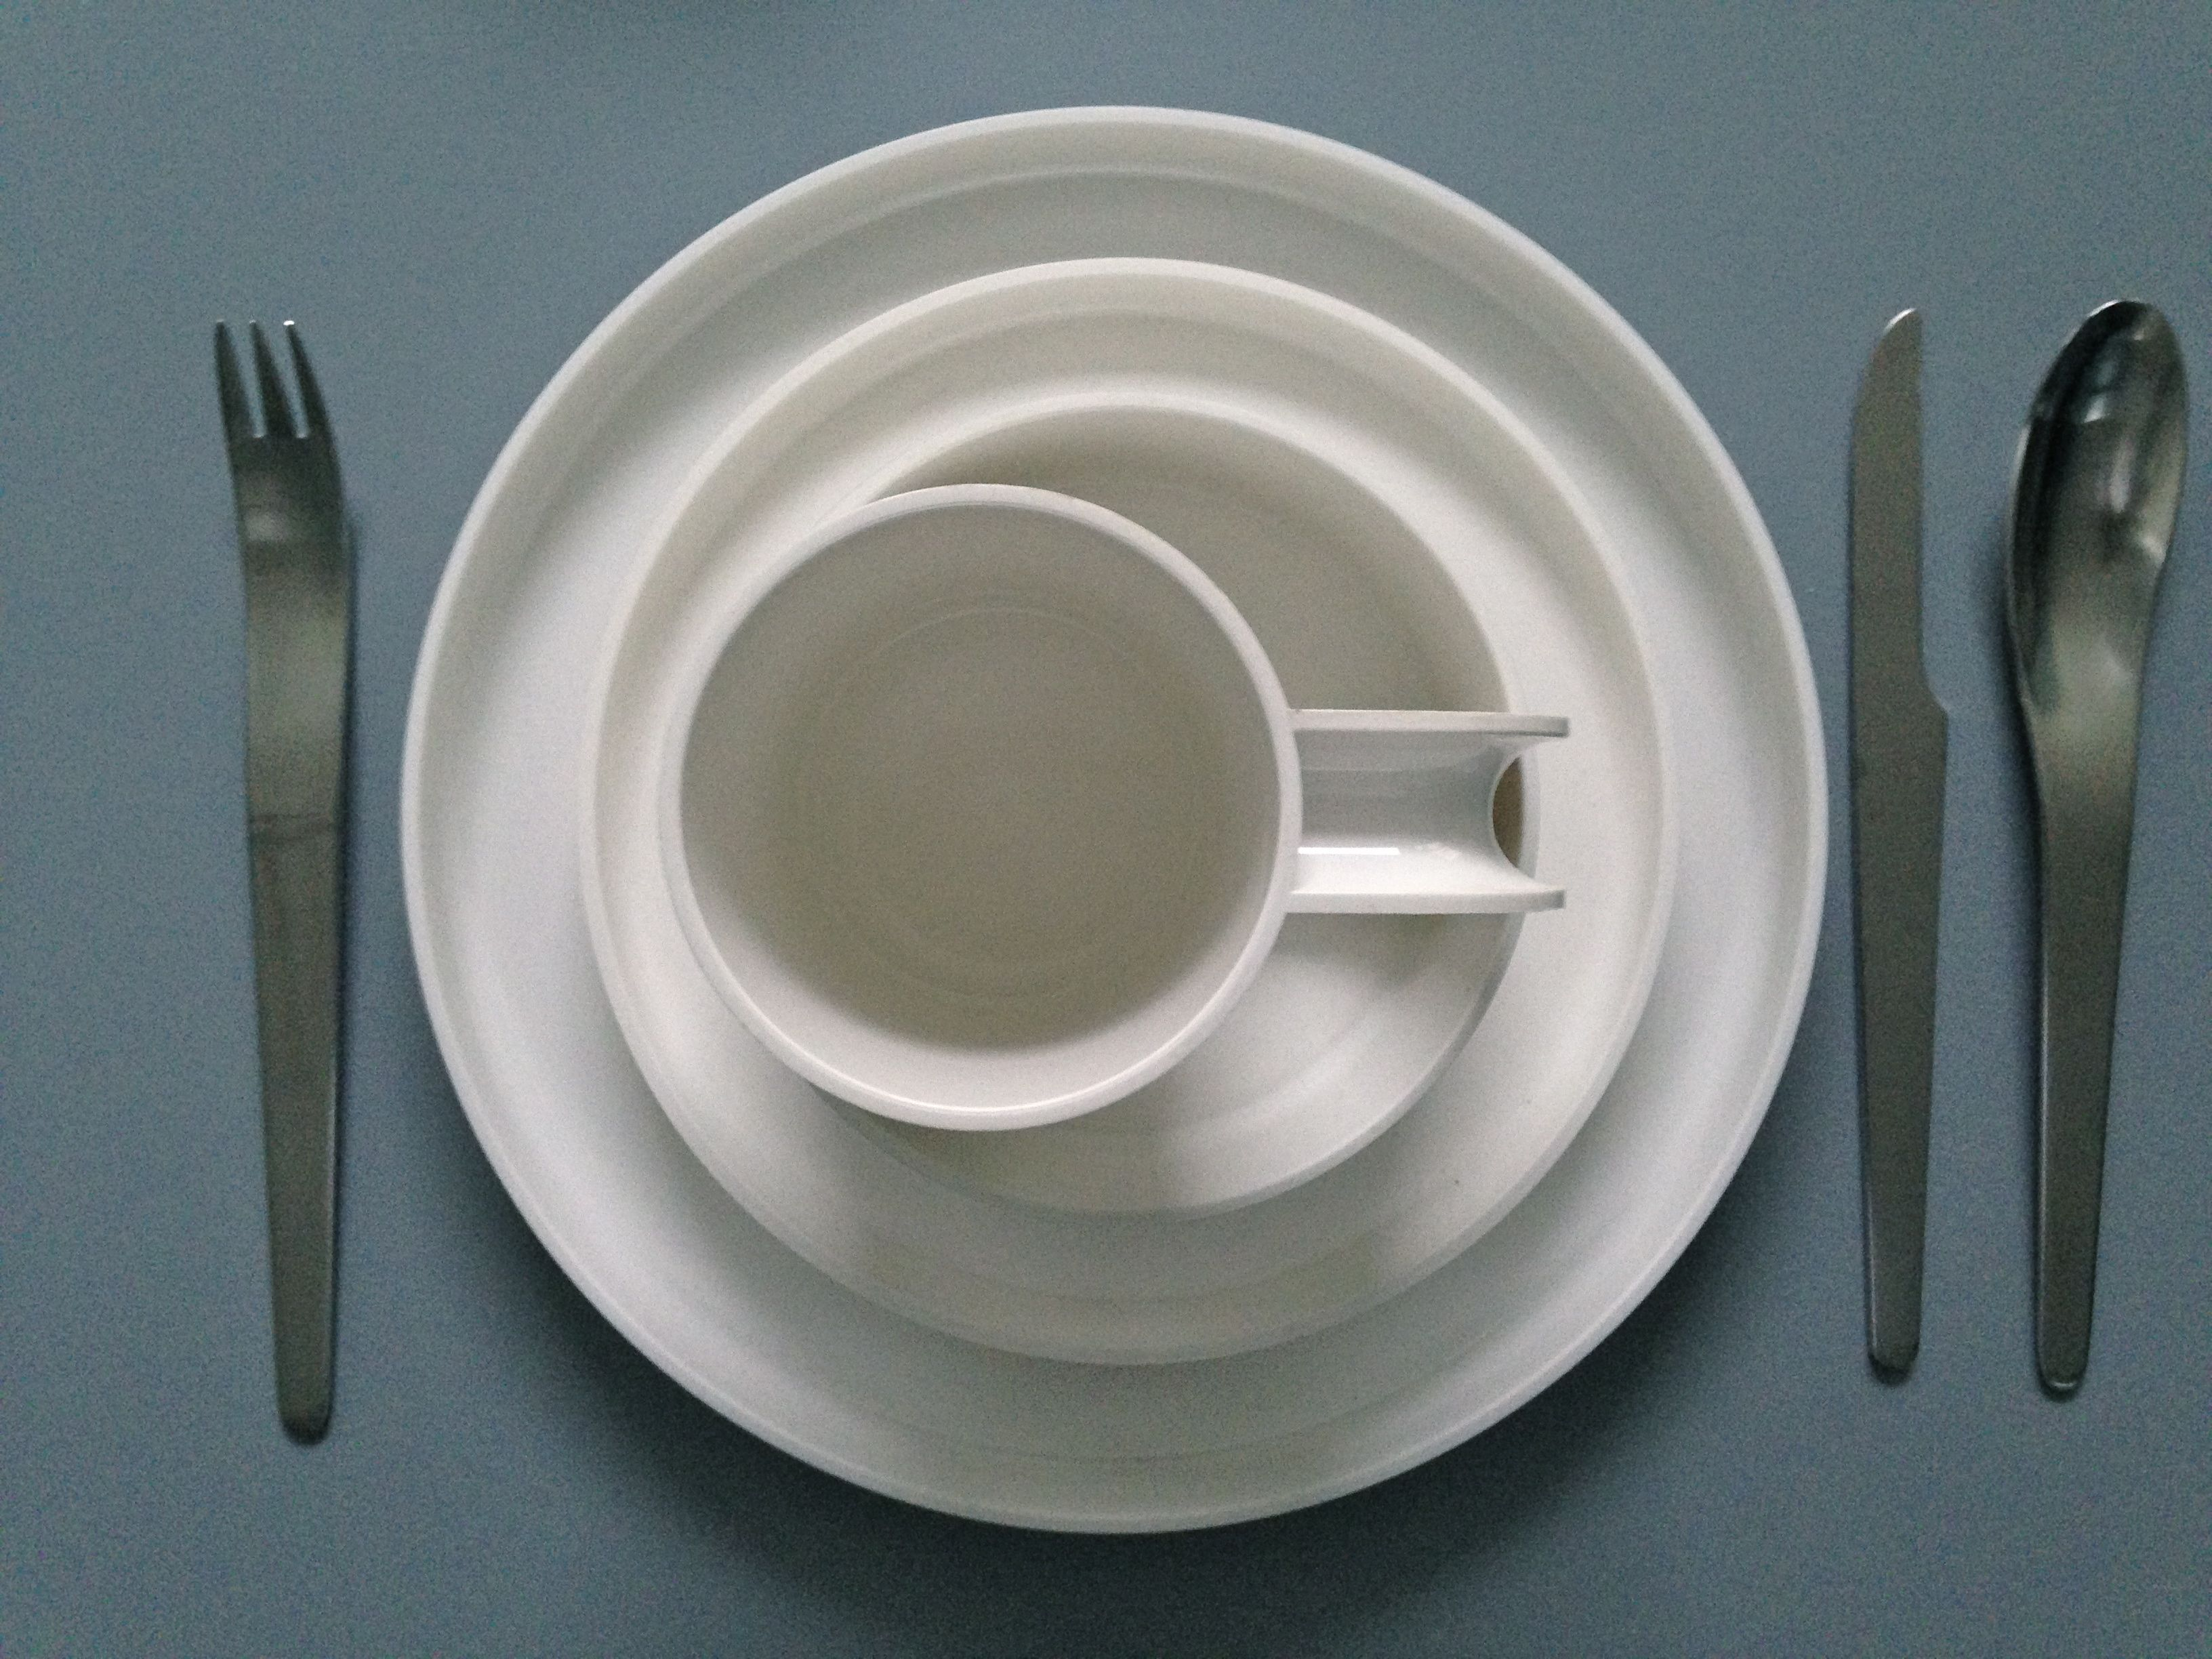 60s Melamine tableware by Massimo Vignelli cutlery by designer